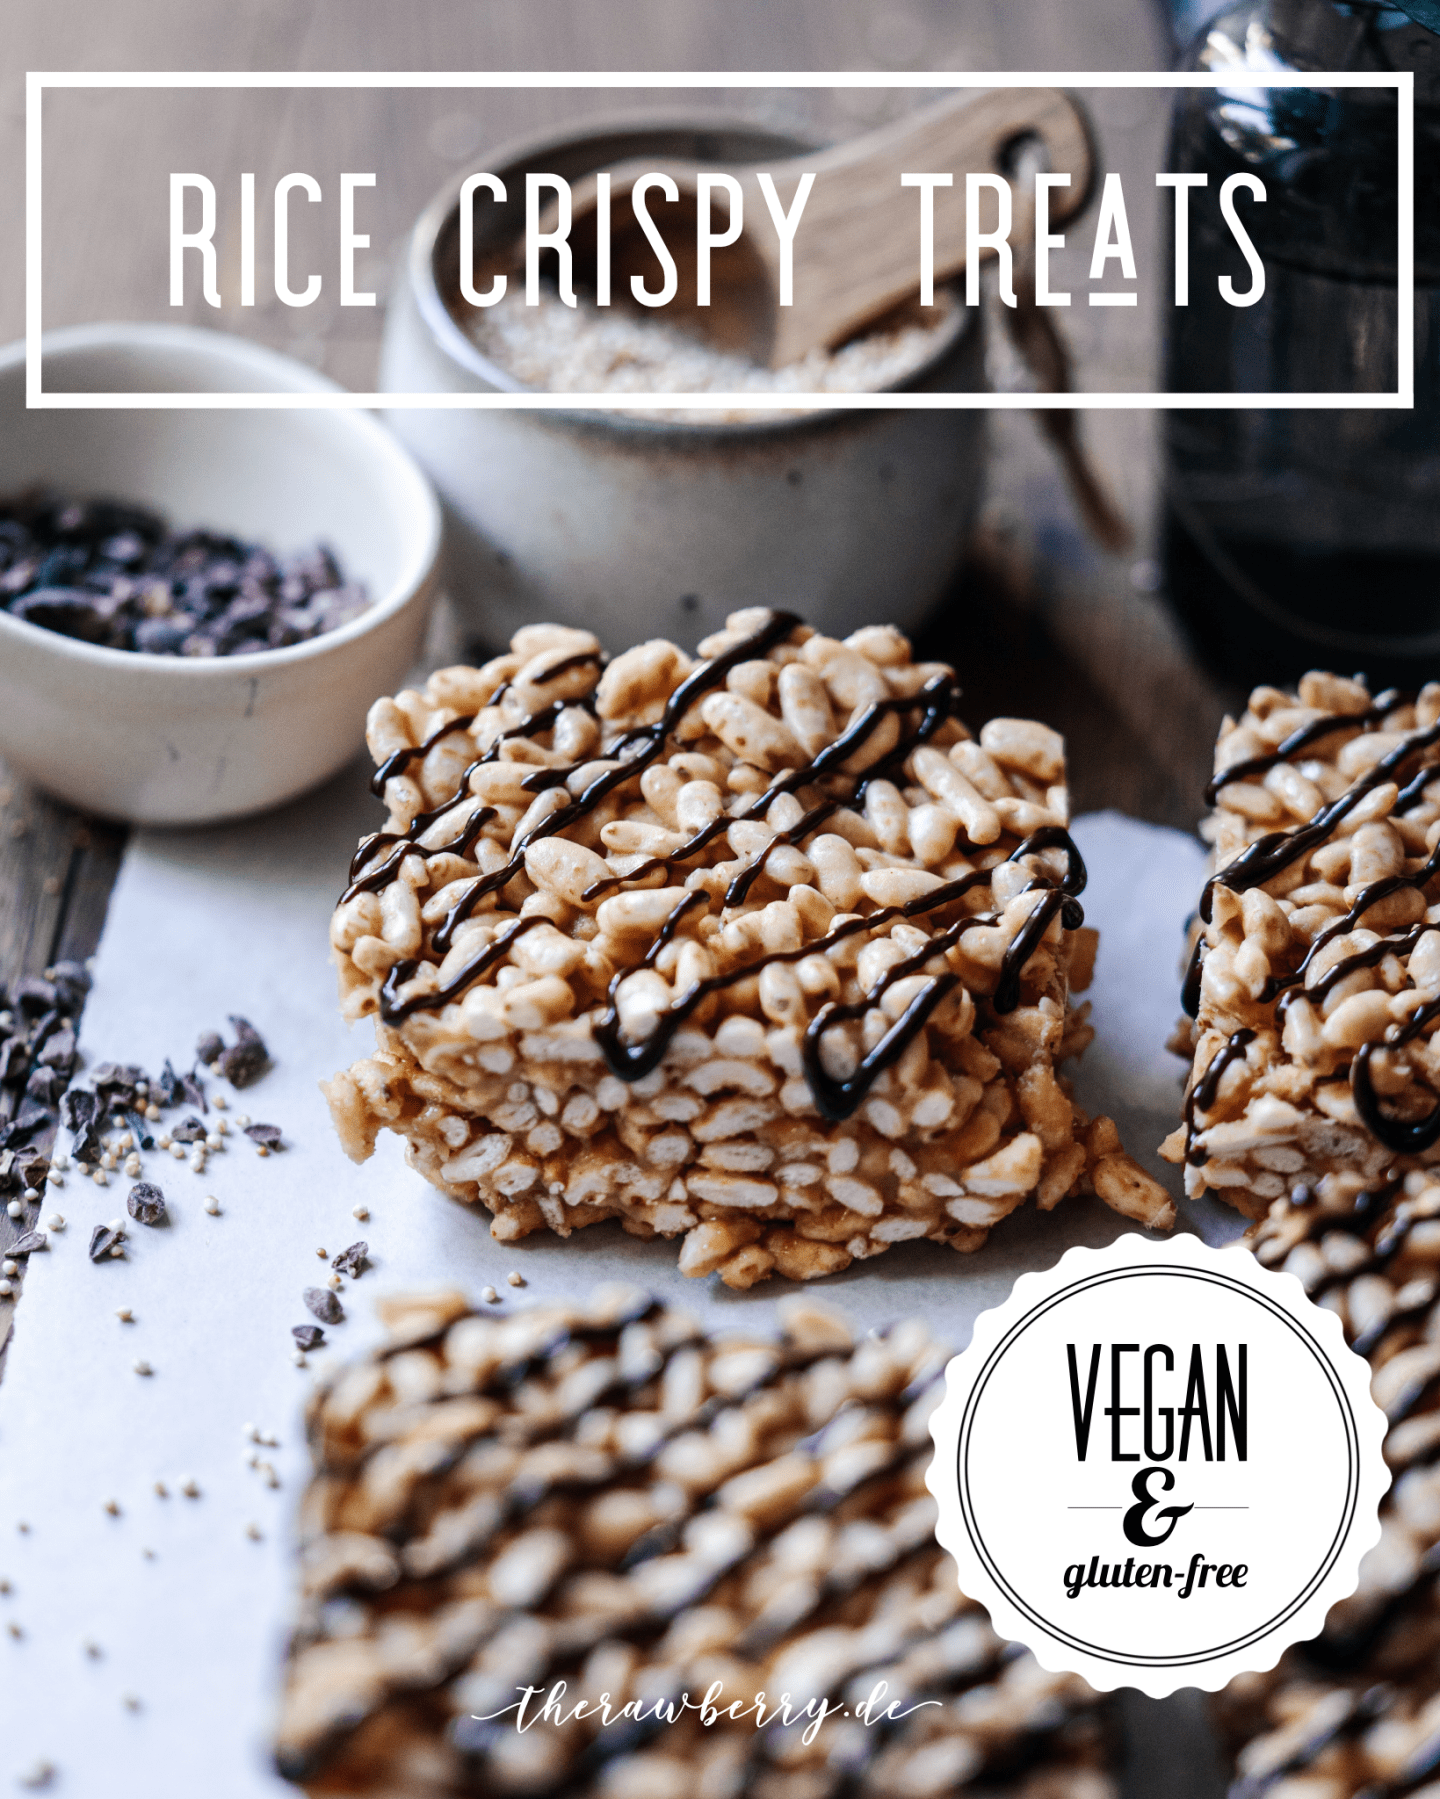 rice crispy treats, Reispops, Reiswaffeln, schokoreiswaffeln, vegan, rice, reis, lecker, delicious, easy, einfach, simple, simpel, treat, süßigkeit, dessert, snack, nachtisch, chocolate, schokolade, glutenfree, gluten-free, glutenfrei, pops, puffed, popped, food, essen, backen, baking, no bake, ohne backen, bars, riegel, marie dorfschmidt, therawberry, plant based, whole foods, diet, diät